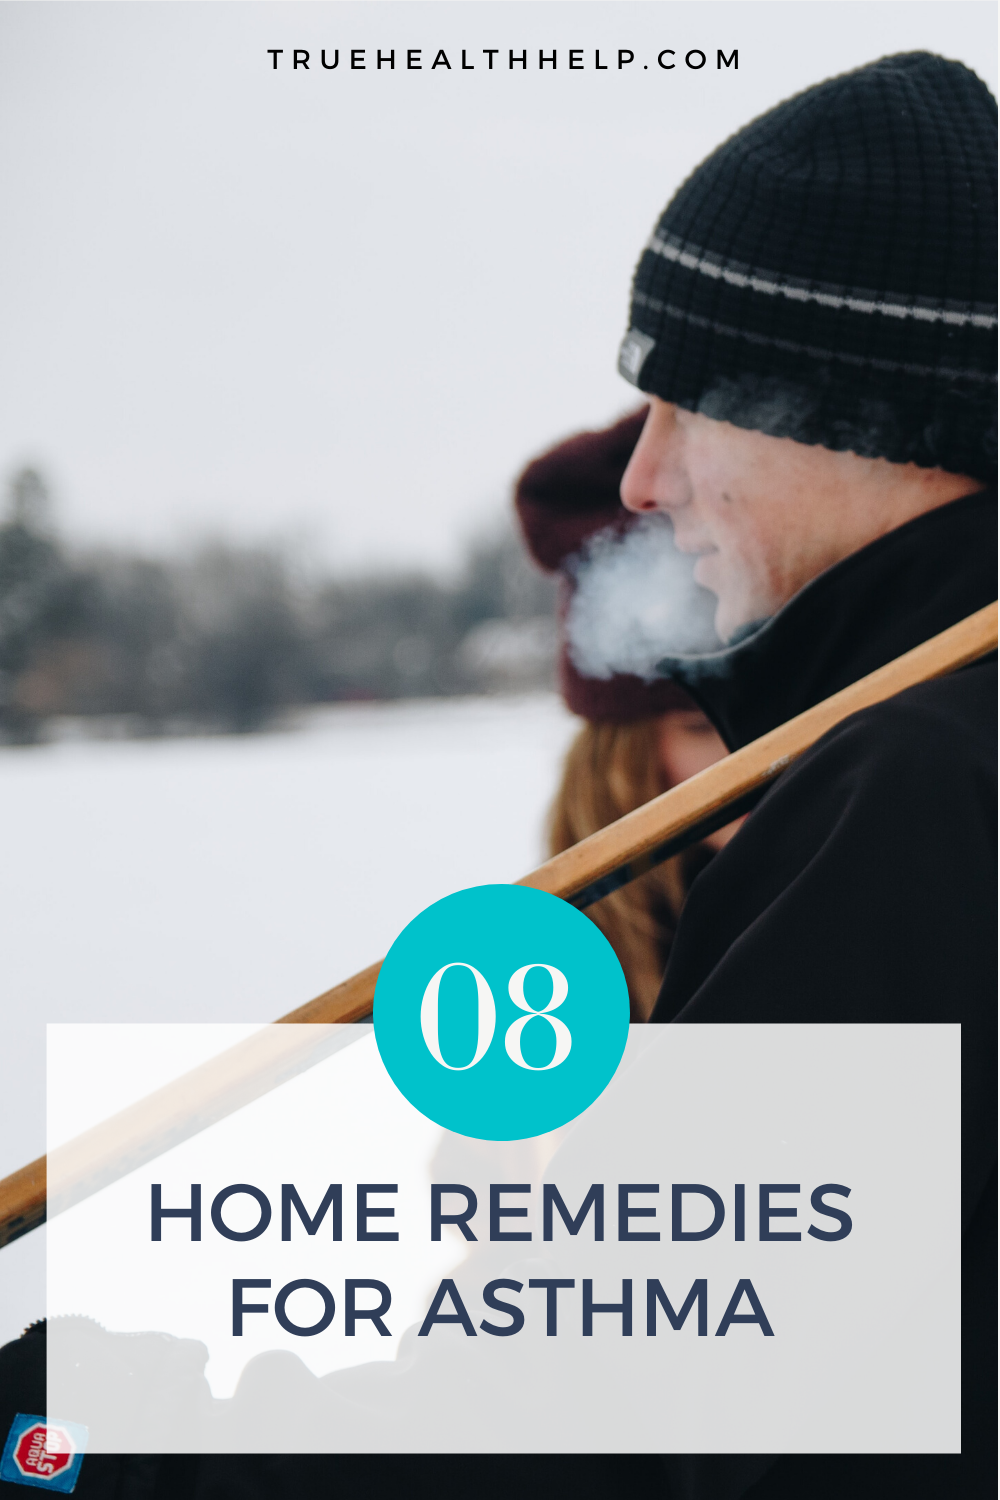 8 Home Remedies for Asthma in 2020 Home remedies for